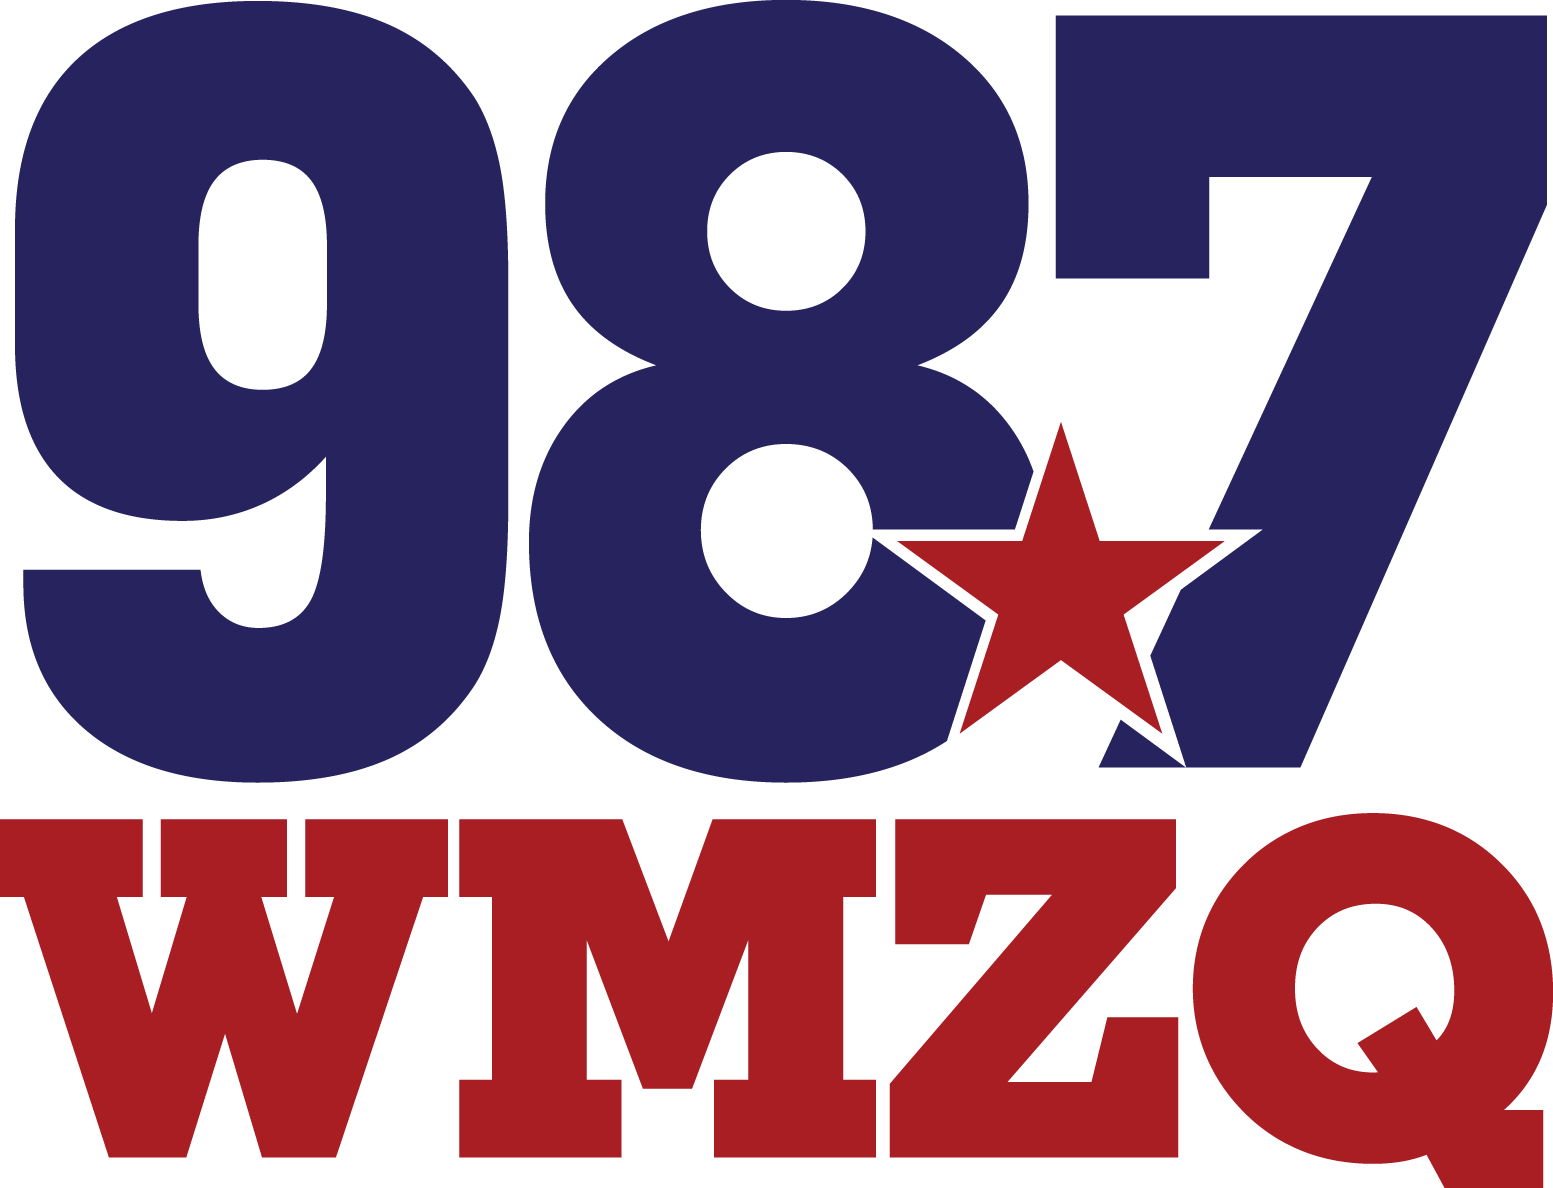 98 7 WMZQ Contact Info: Number, Address, Advertising & More